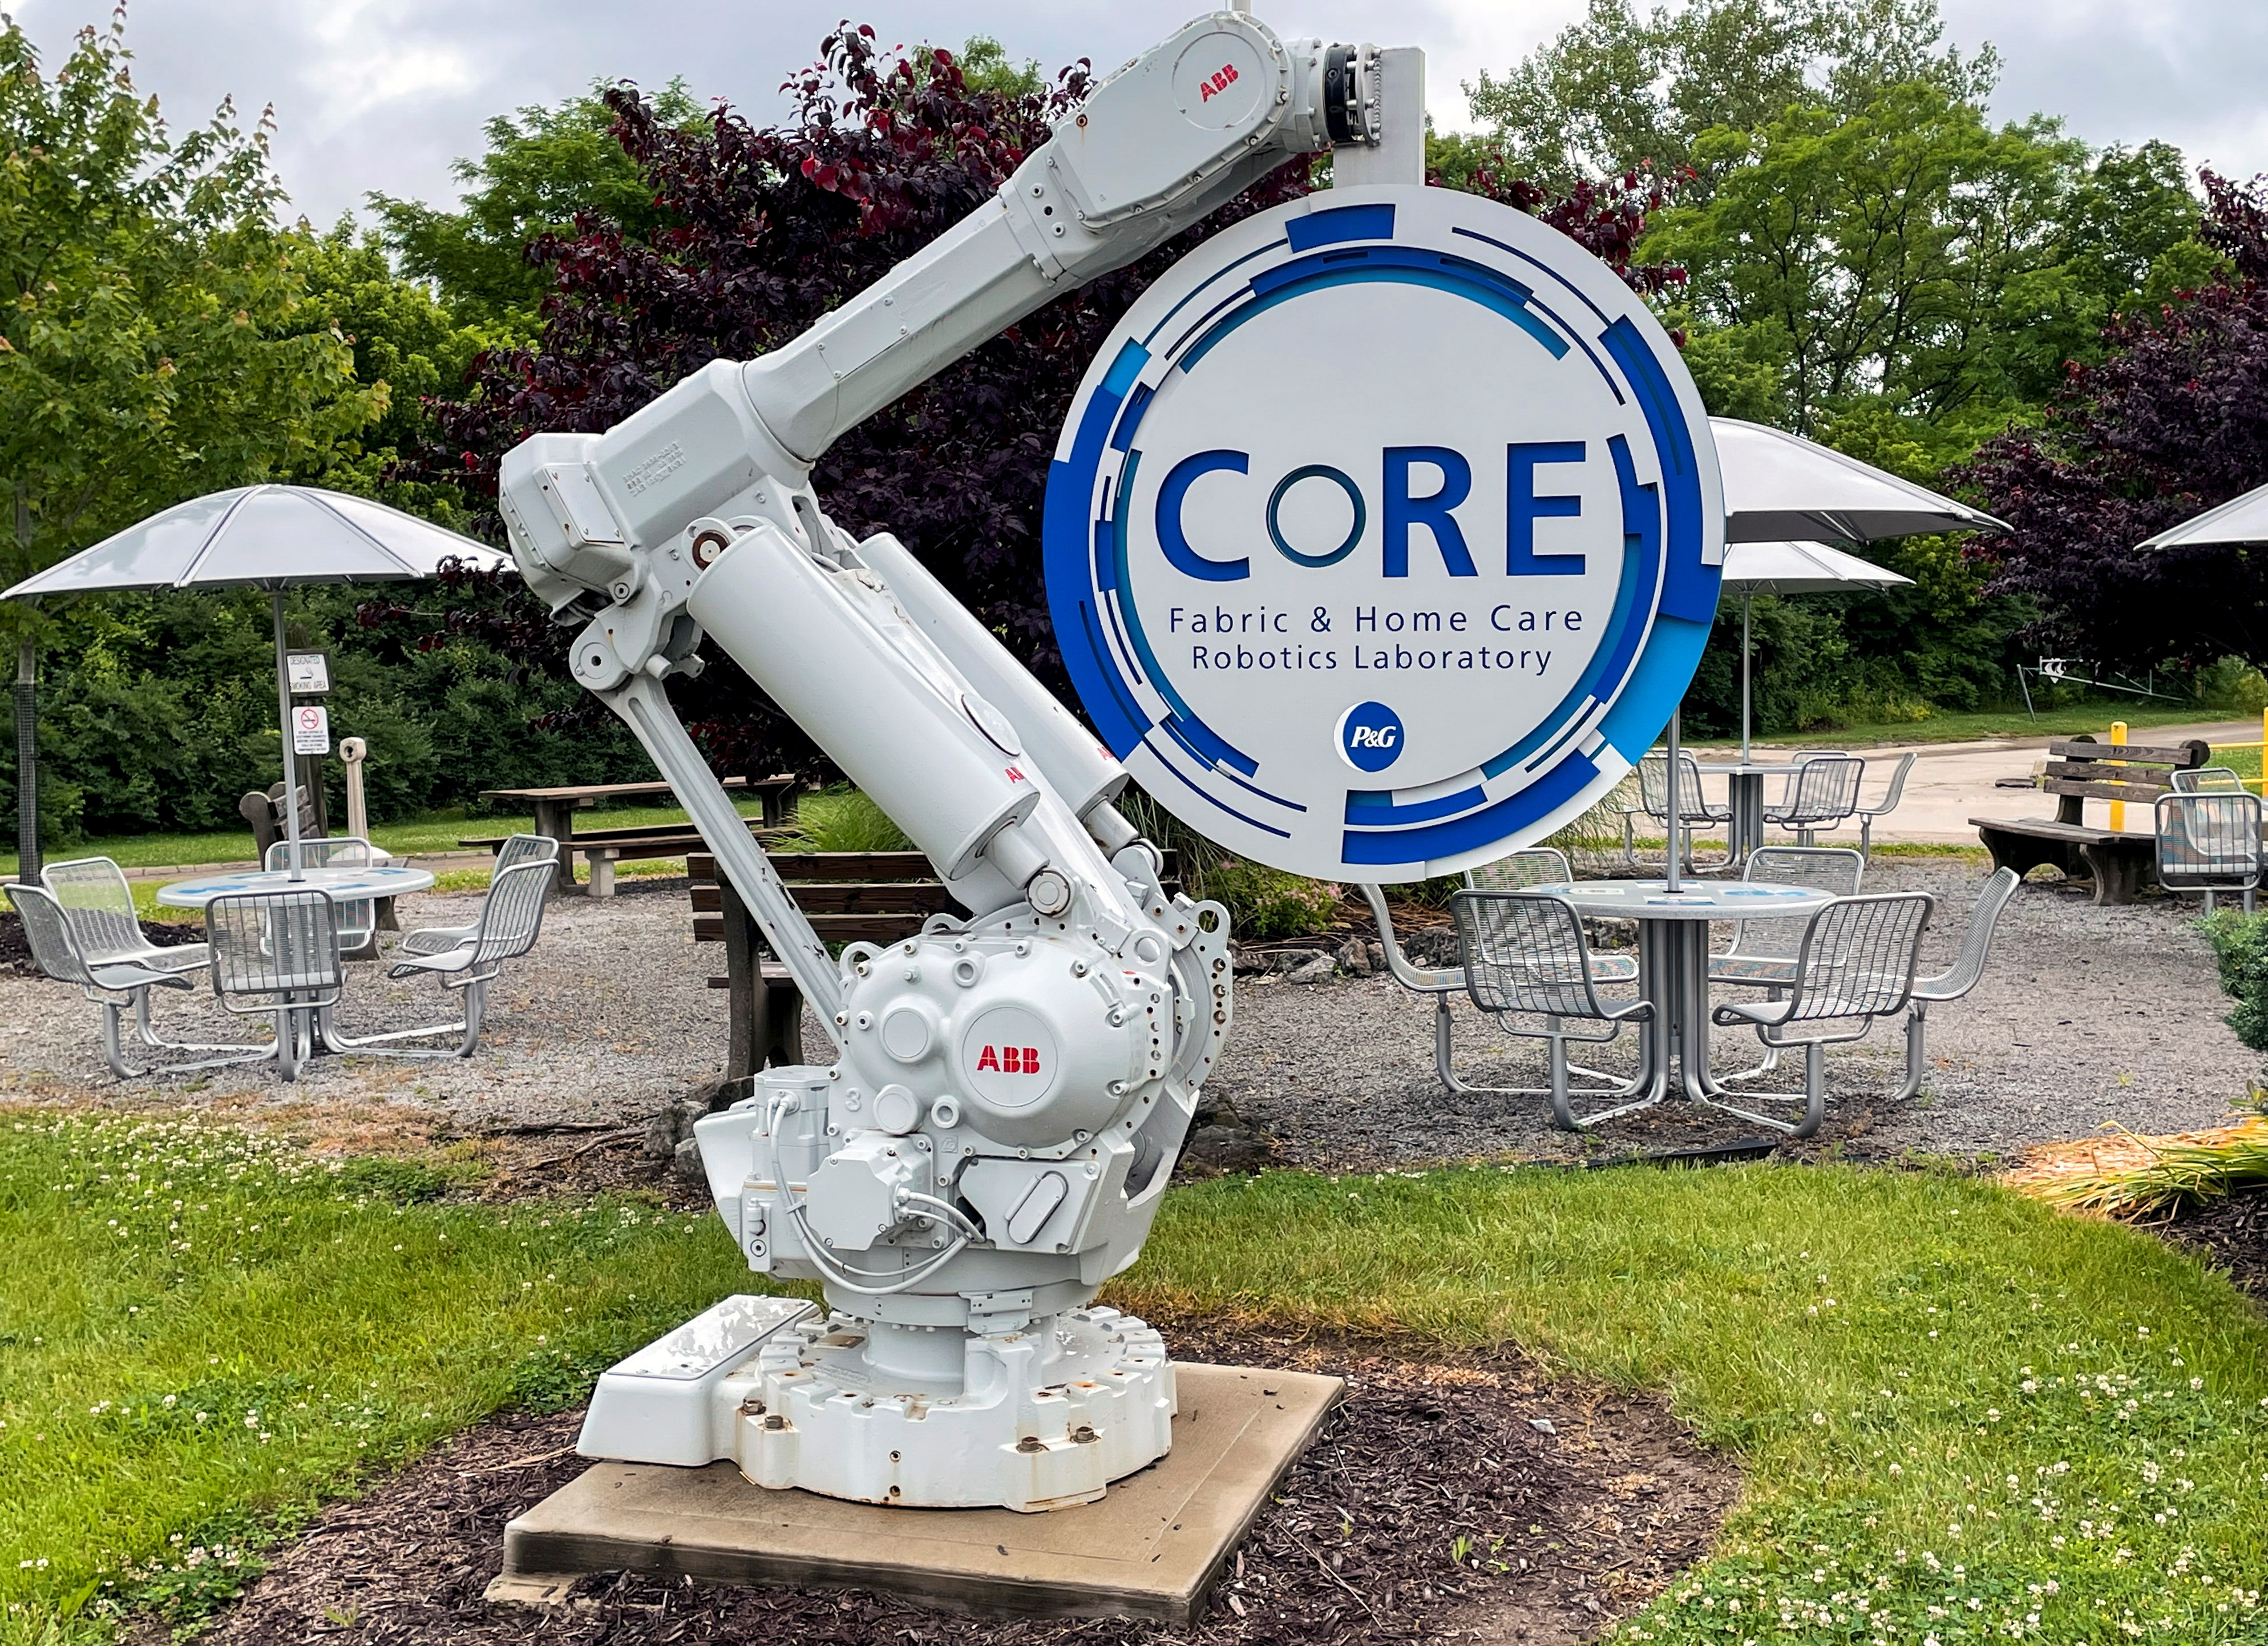 A robotic arm holds a sign for Procter & Gamble's CoRE Fabric and Home Care Robotics Laboratory in Cincinnati, Ohio, U.S., May 27, 2021. Picture taken May 27, 2021. REUTERS/Timothy Aeppel